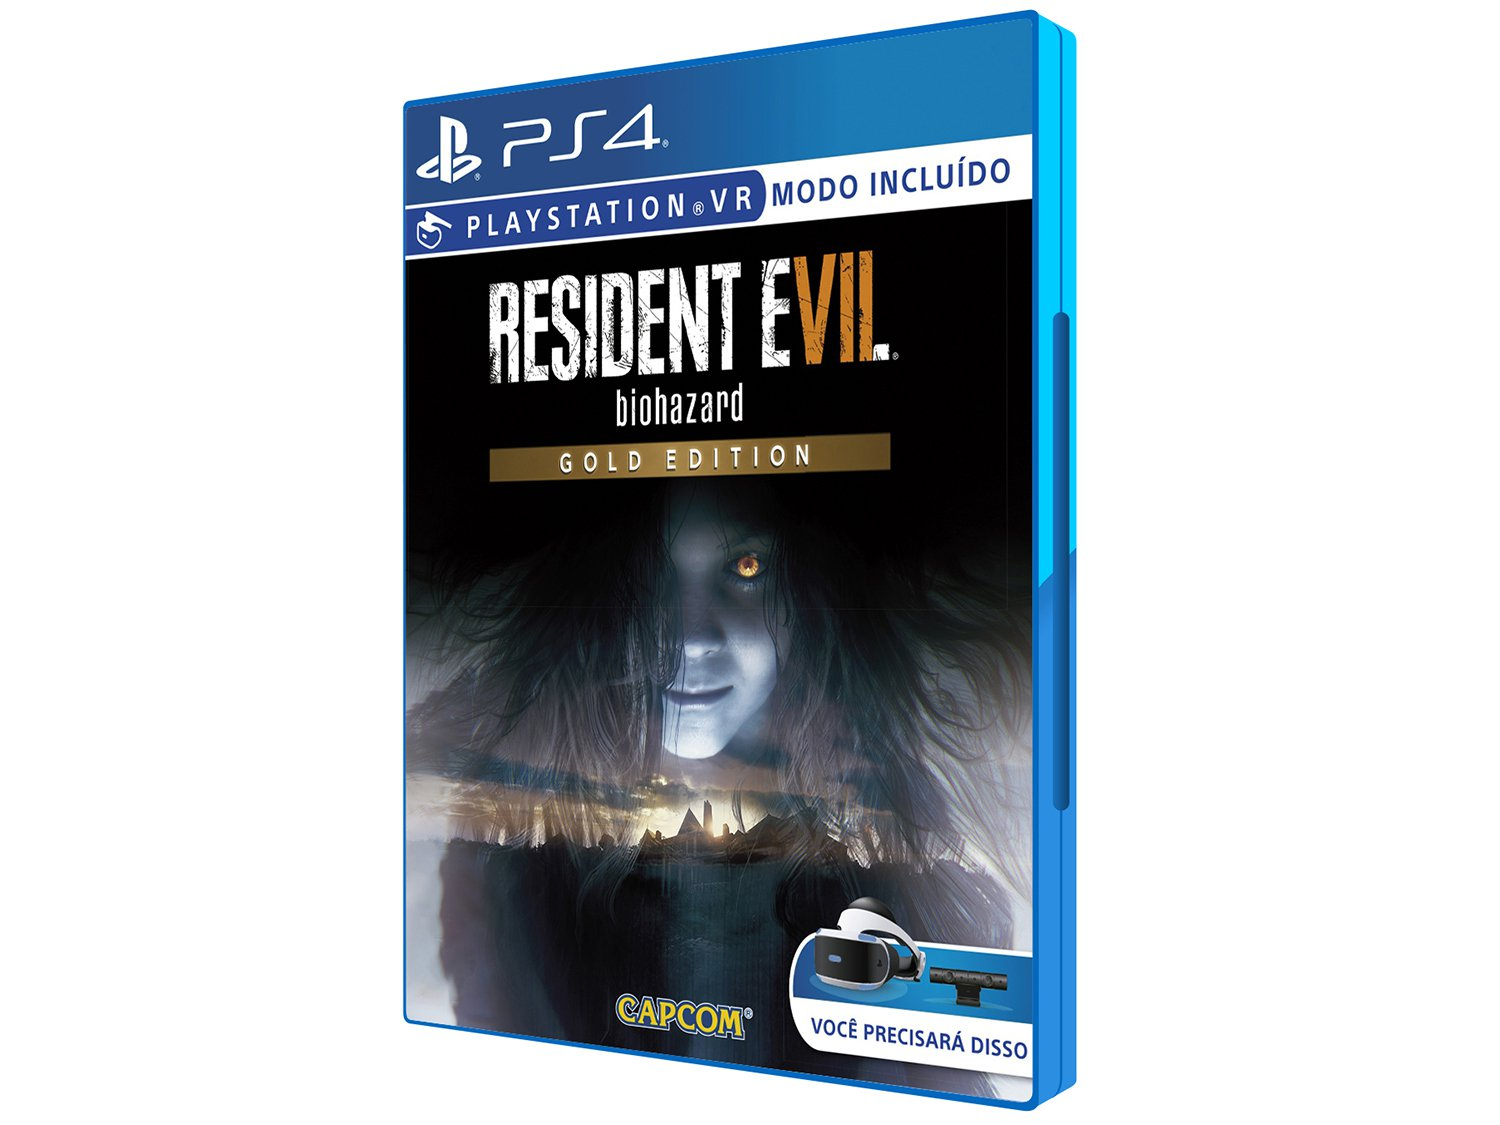 Resident Evil 7 Biohazard Gold Edition para PS4 - Capcom